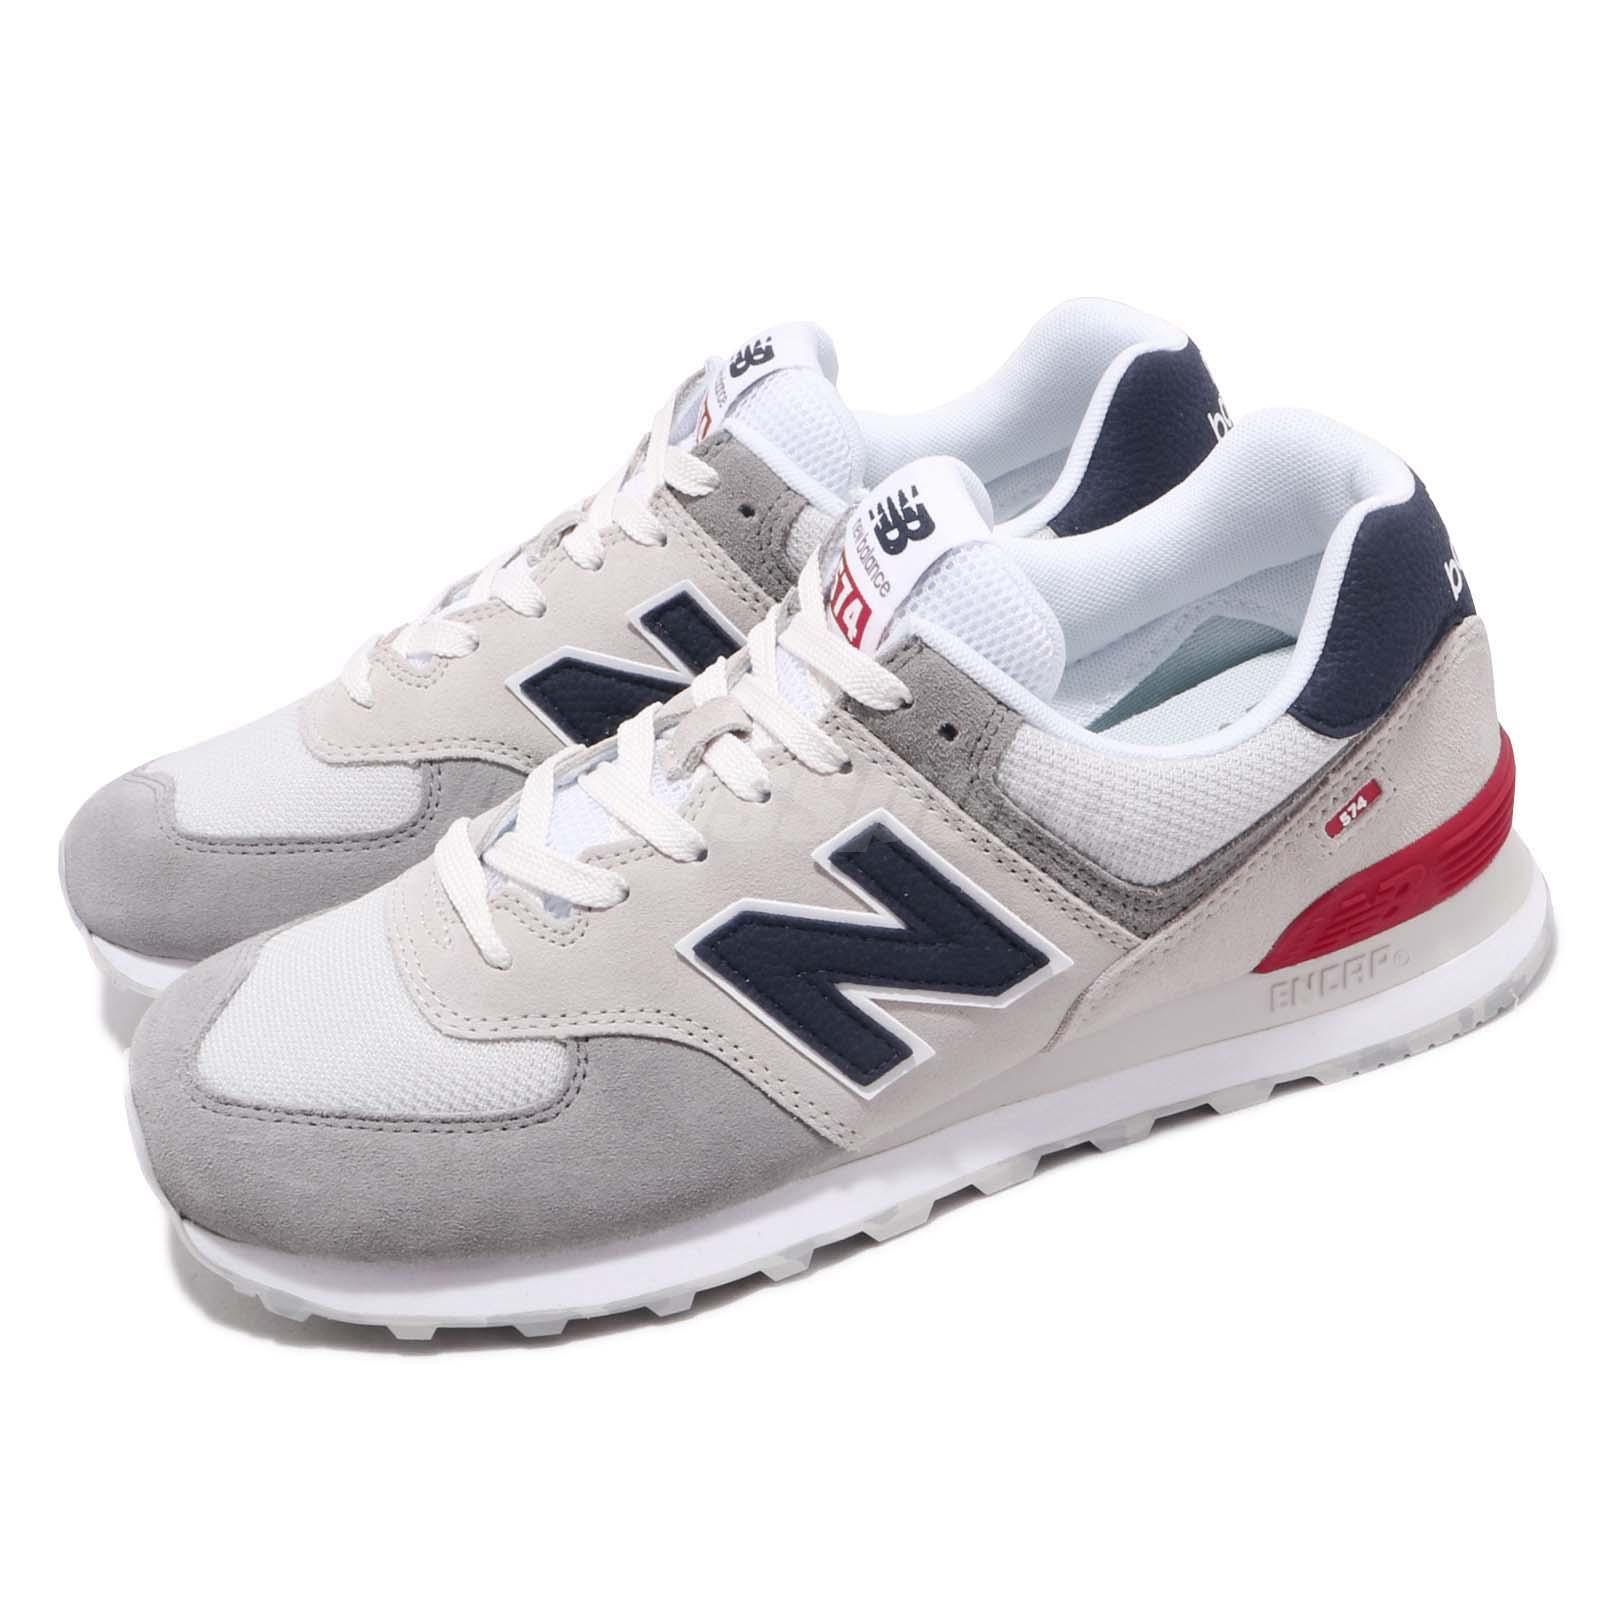 new style 773a6 44e8e Details about New Balance ML574UJD D Grey Blue Red White Men Running Shoes  Sneakers ML574UJDD